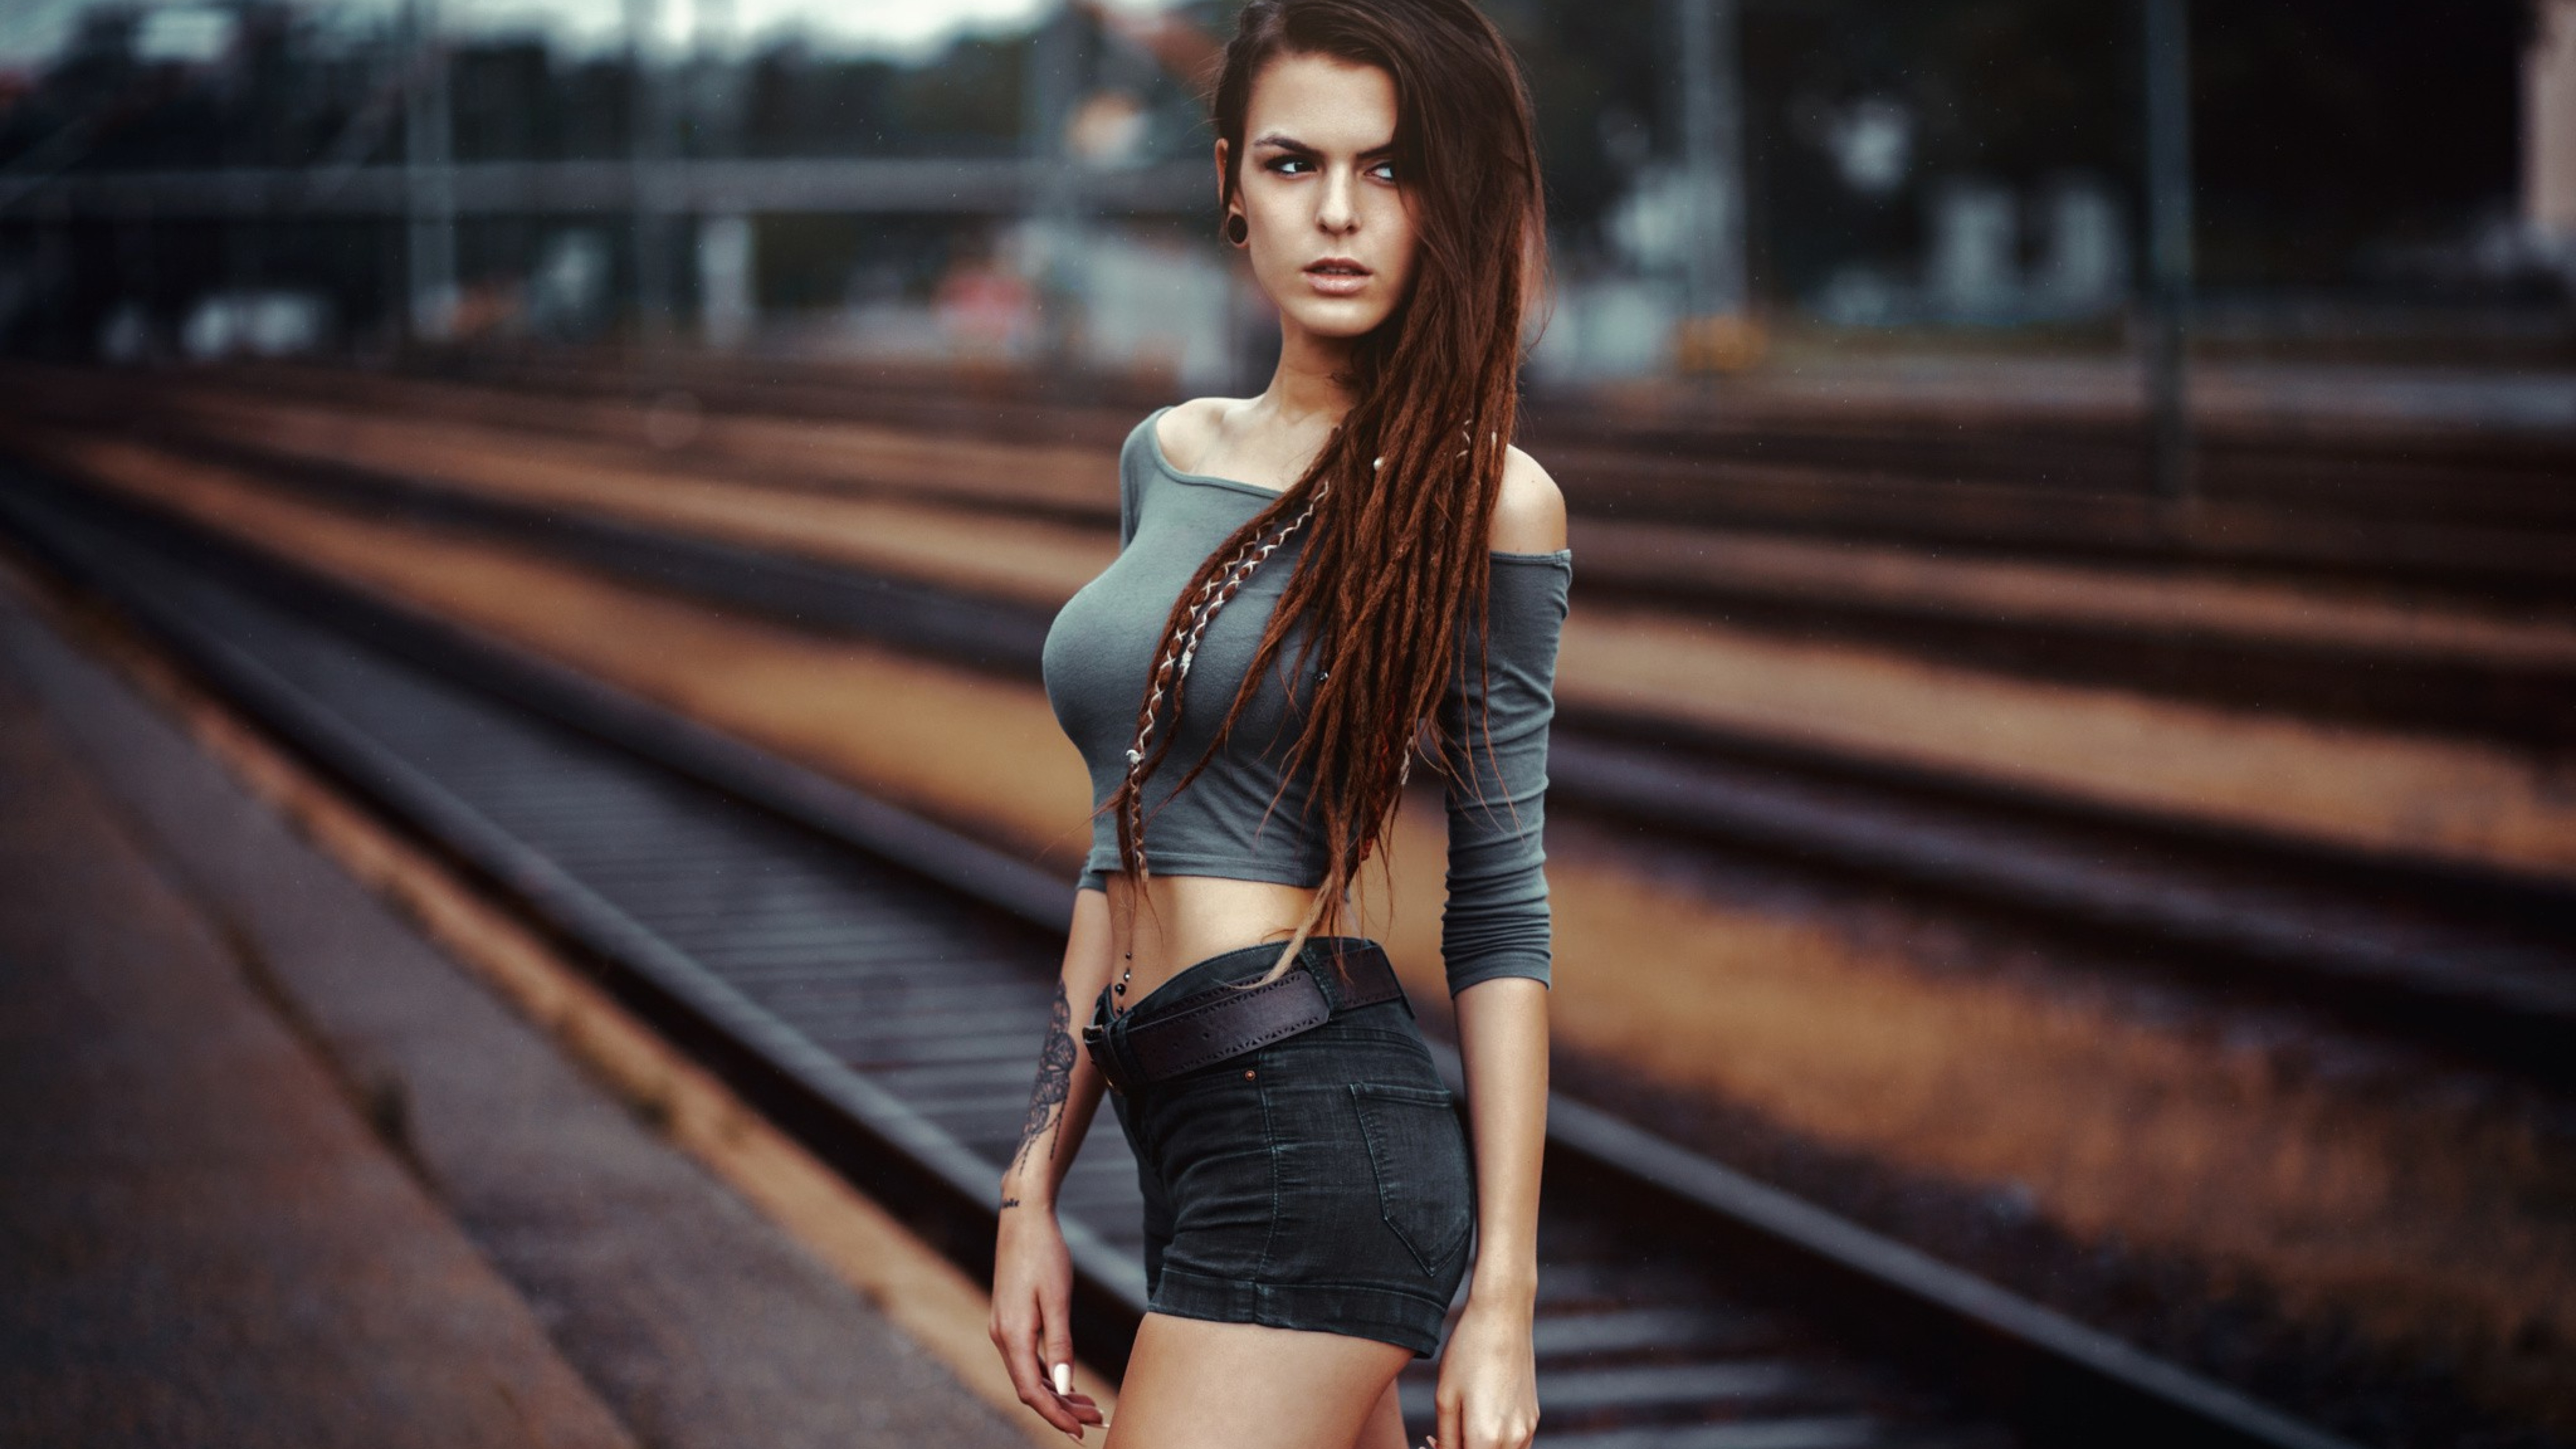 4K Hot Girl Wallpapers High Quality | Download Free